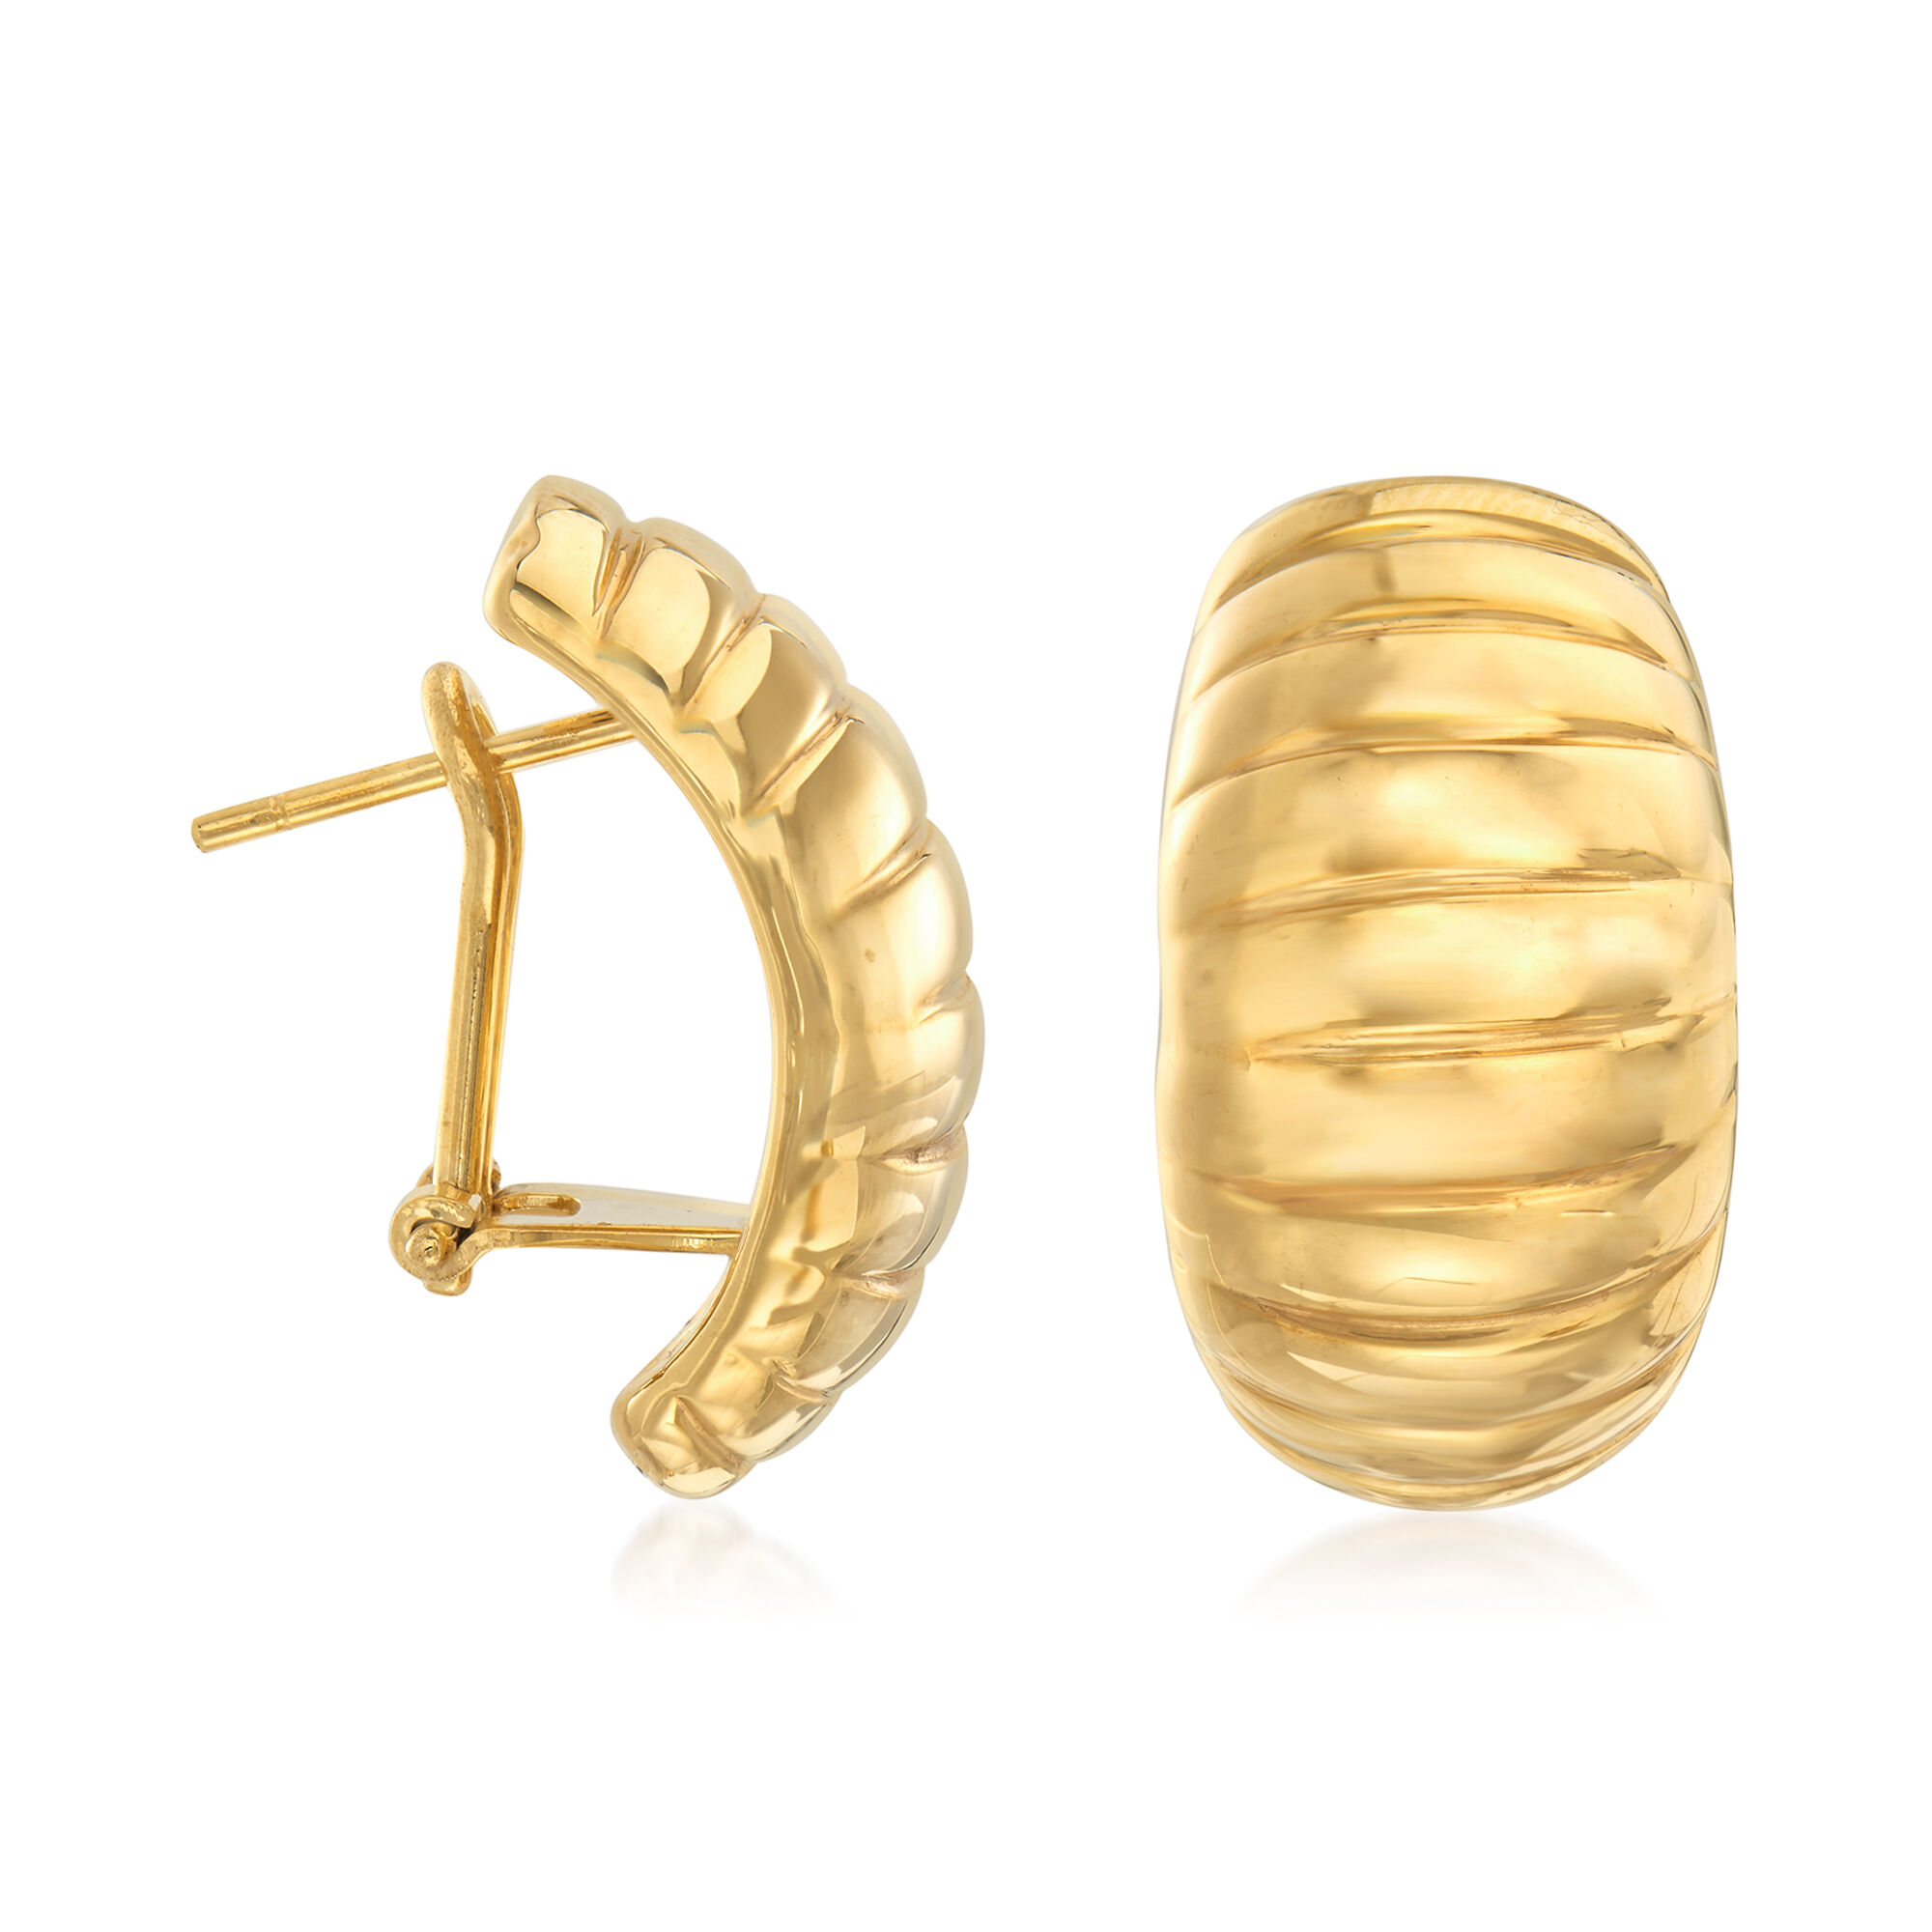 Italy Design Jewelry Italian 18 Karat Yellow Gold Ribbed Earrings